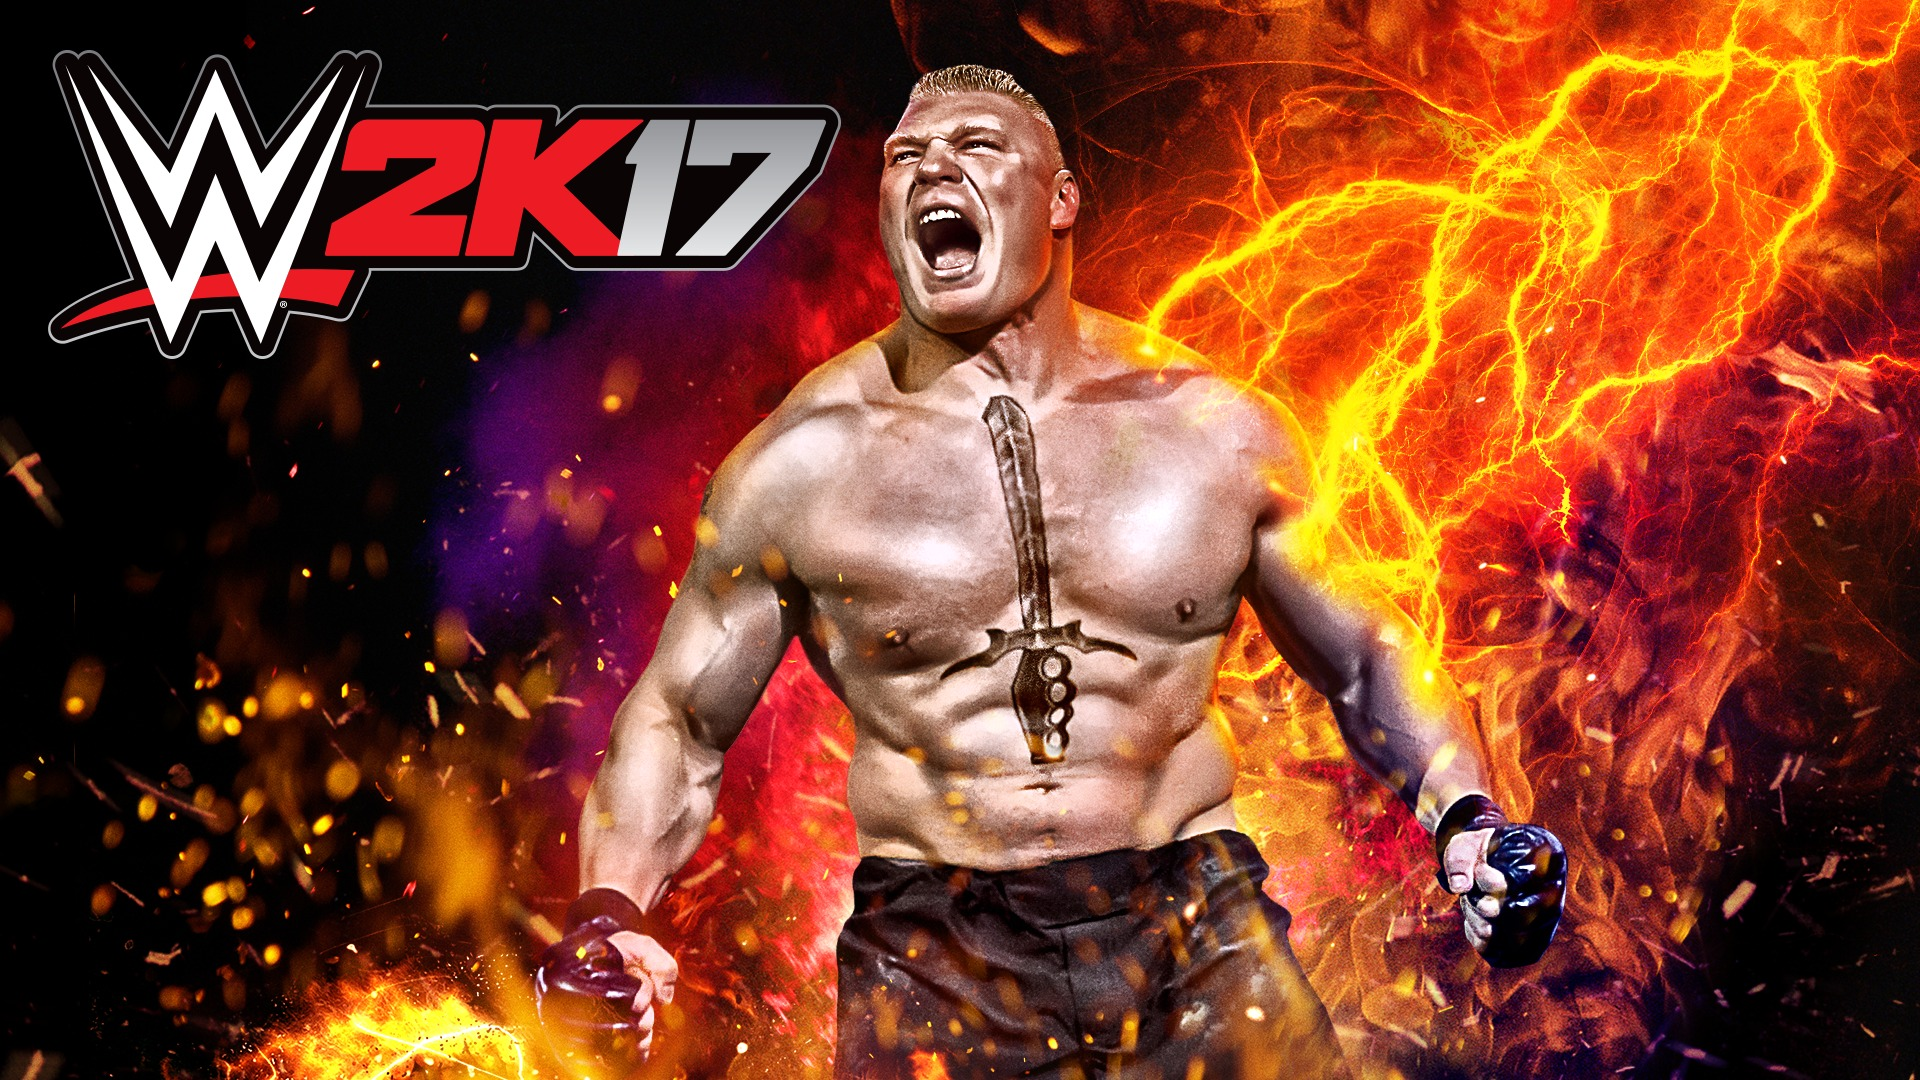 Wwe 2k17 Hd Wallpapers